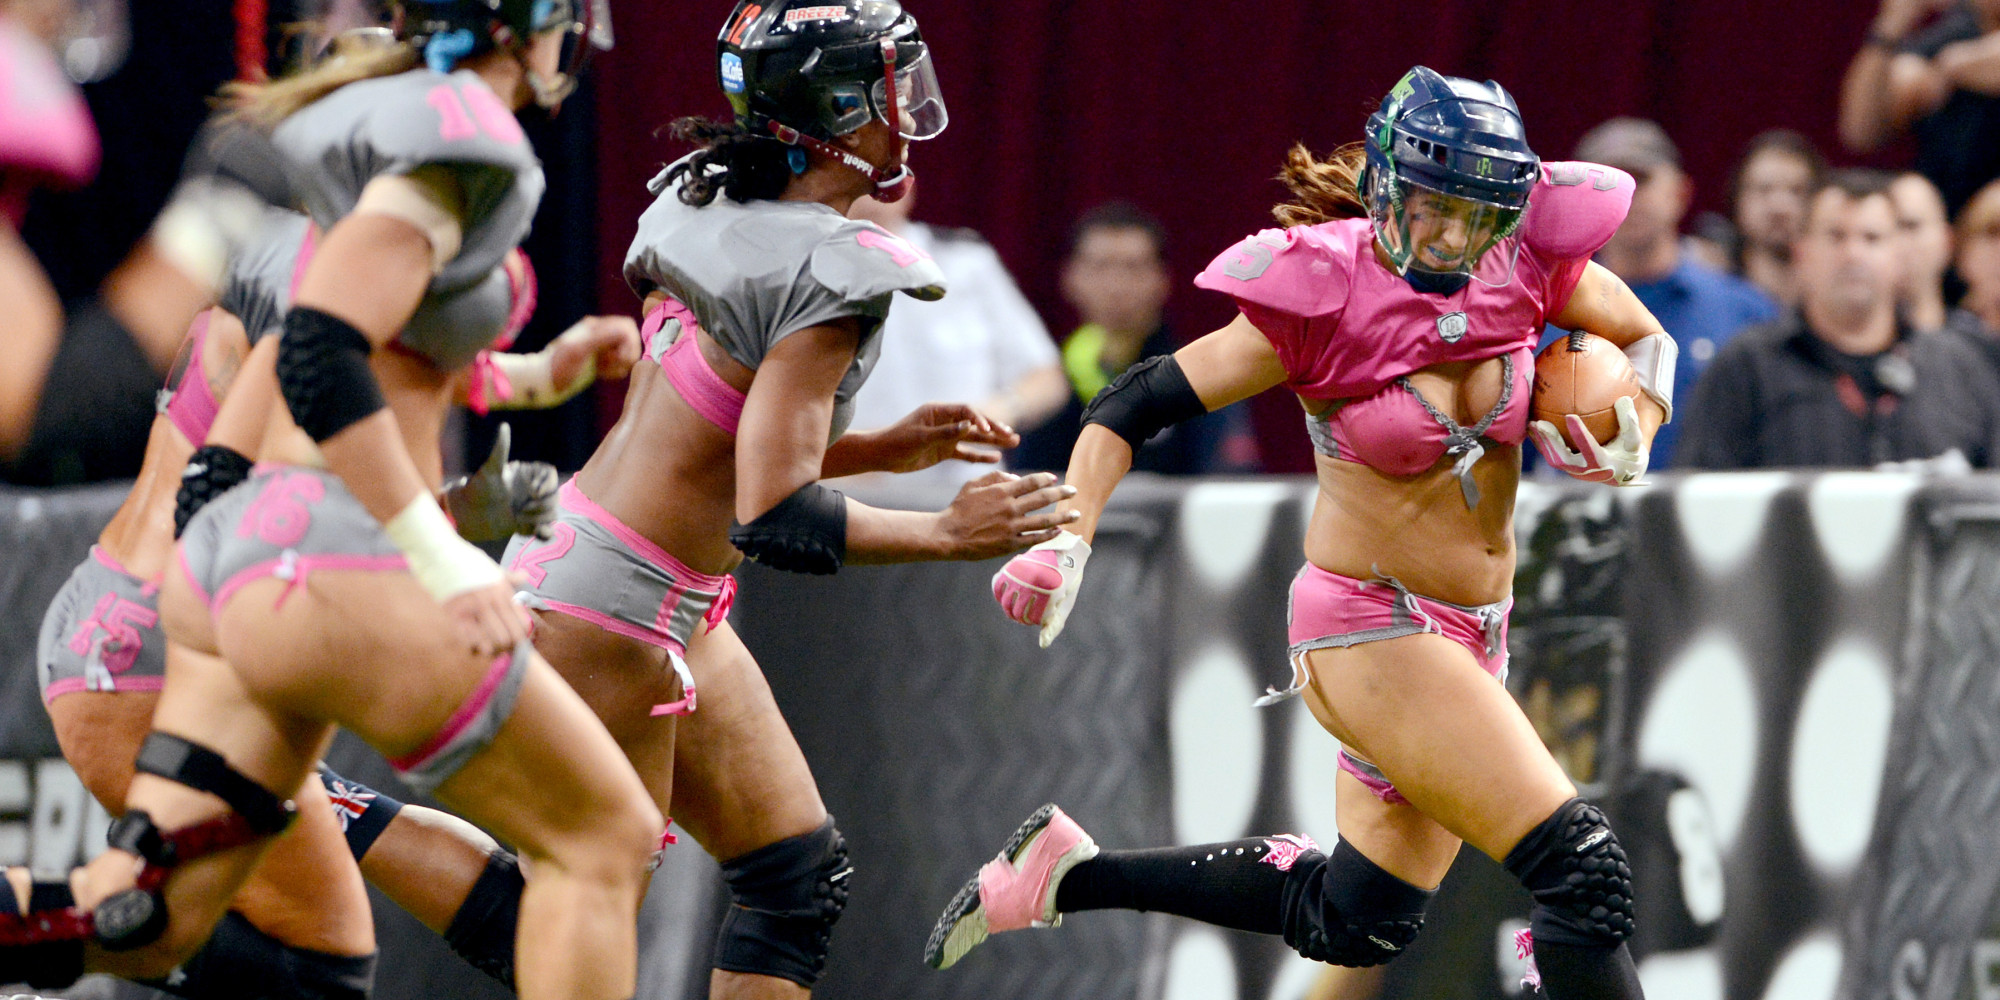 Lingerie football players speak out about injuries lack of